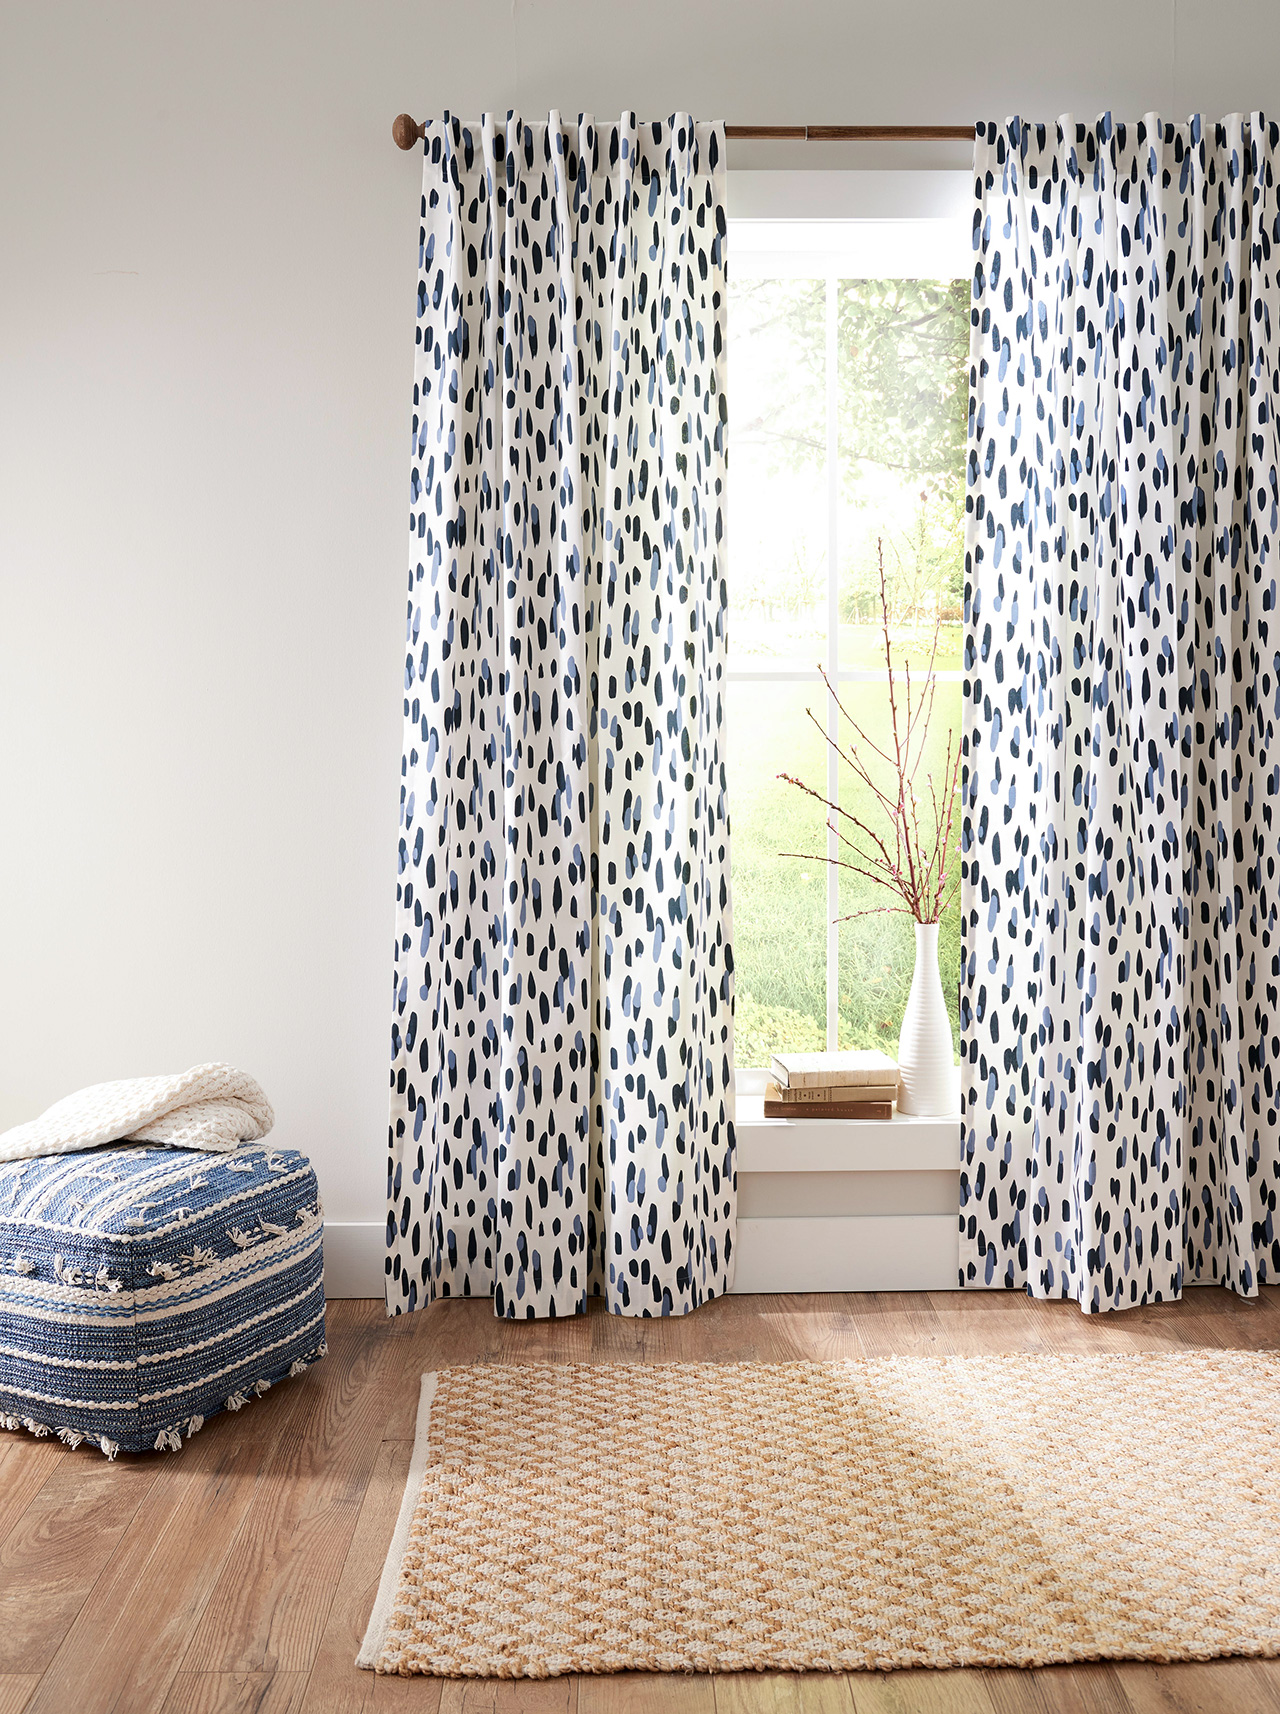 hung blue and white graphic curtains with blue ottoman